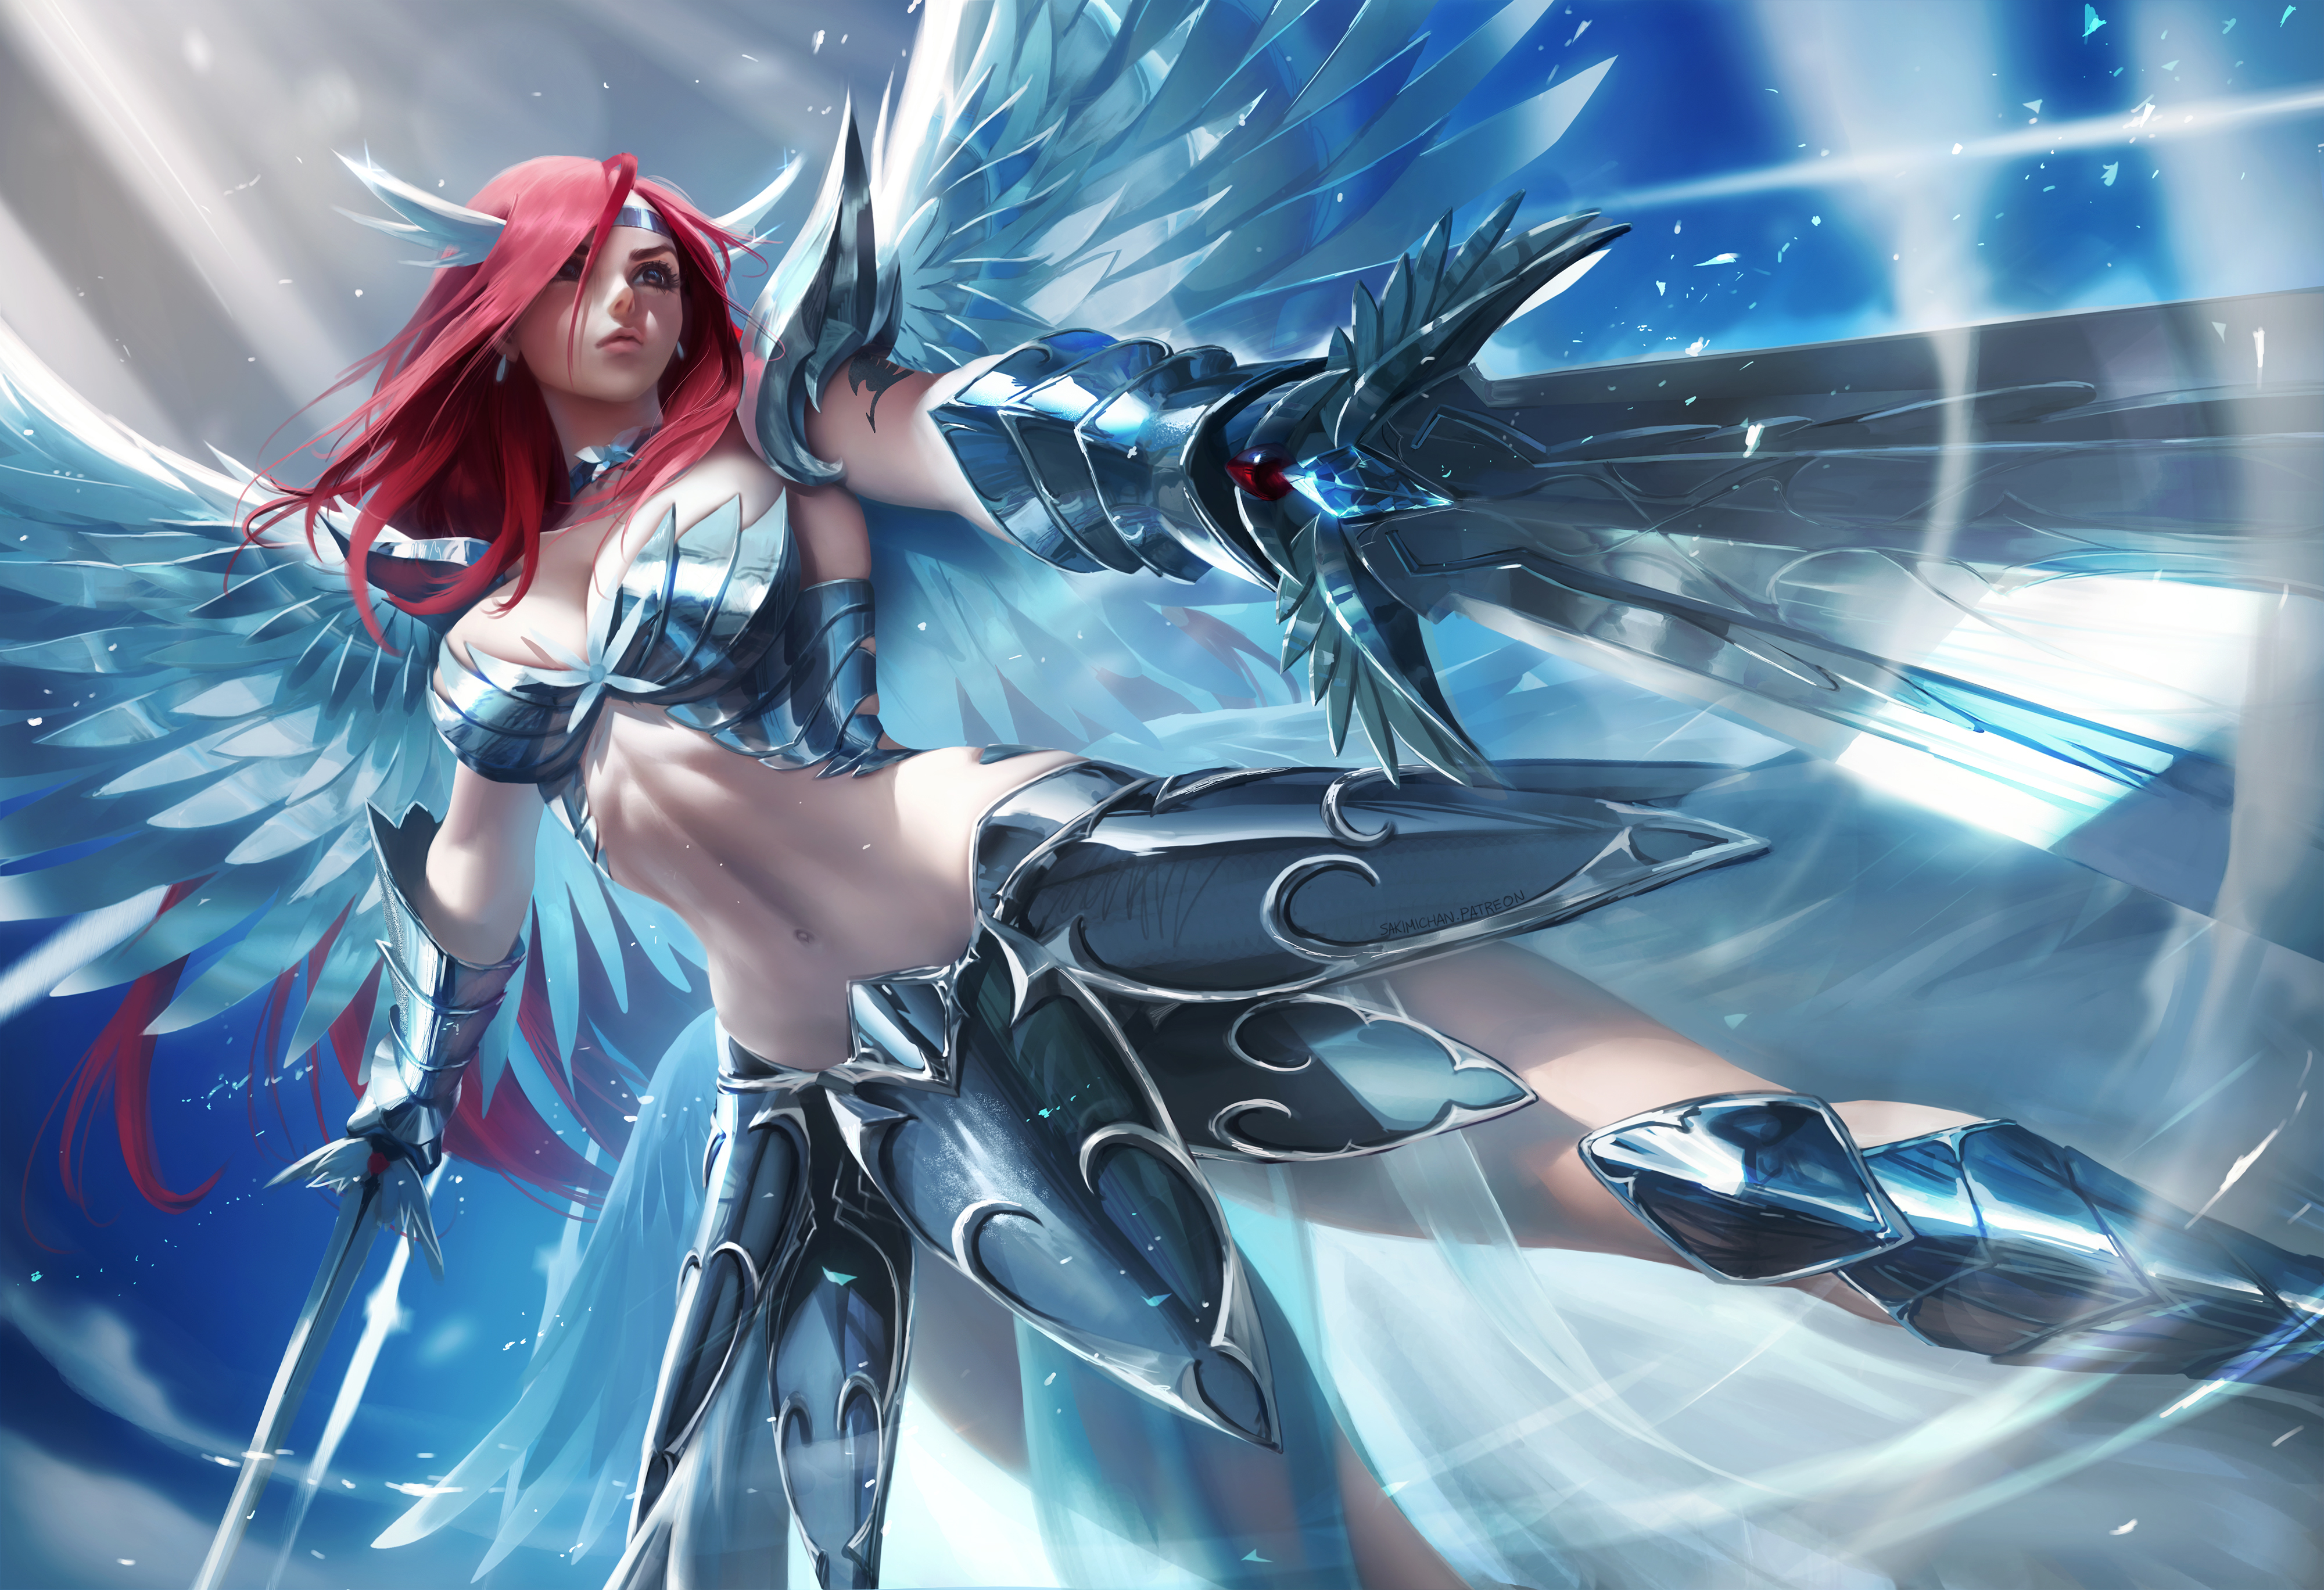 Erza Scarlet Hd Anime 4k Wallpapers Images Backgrounds